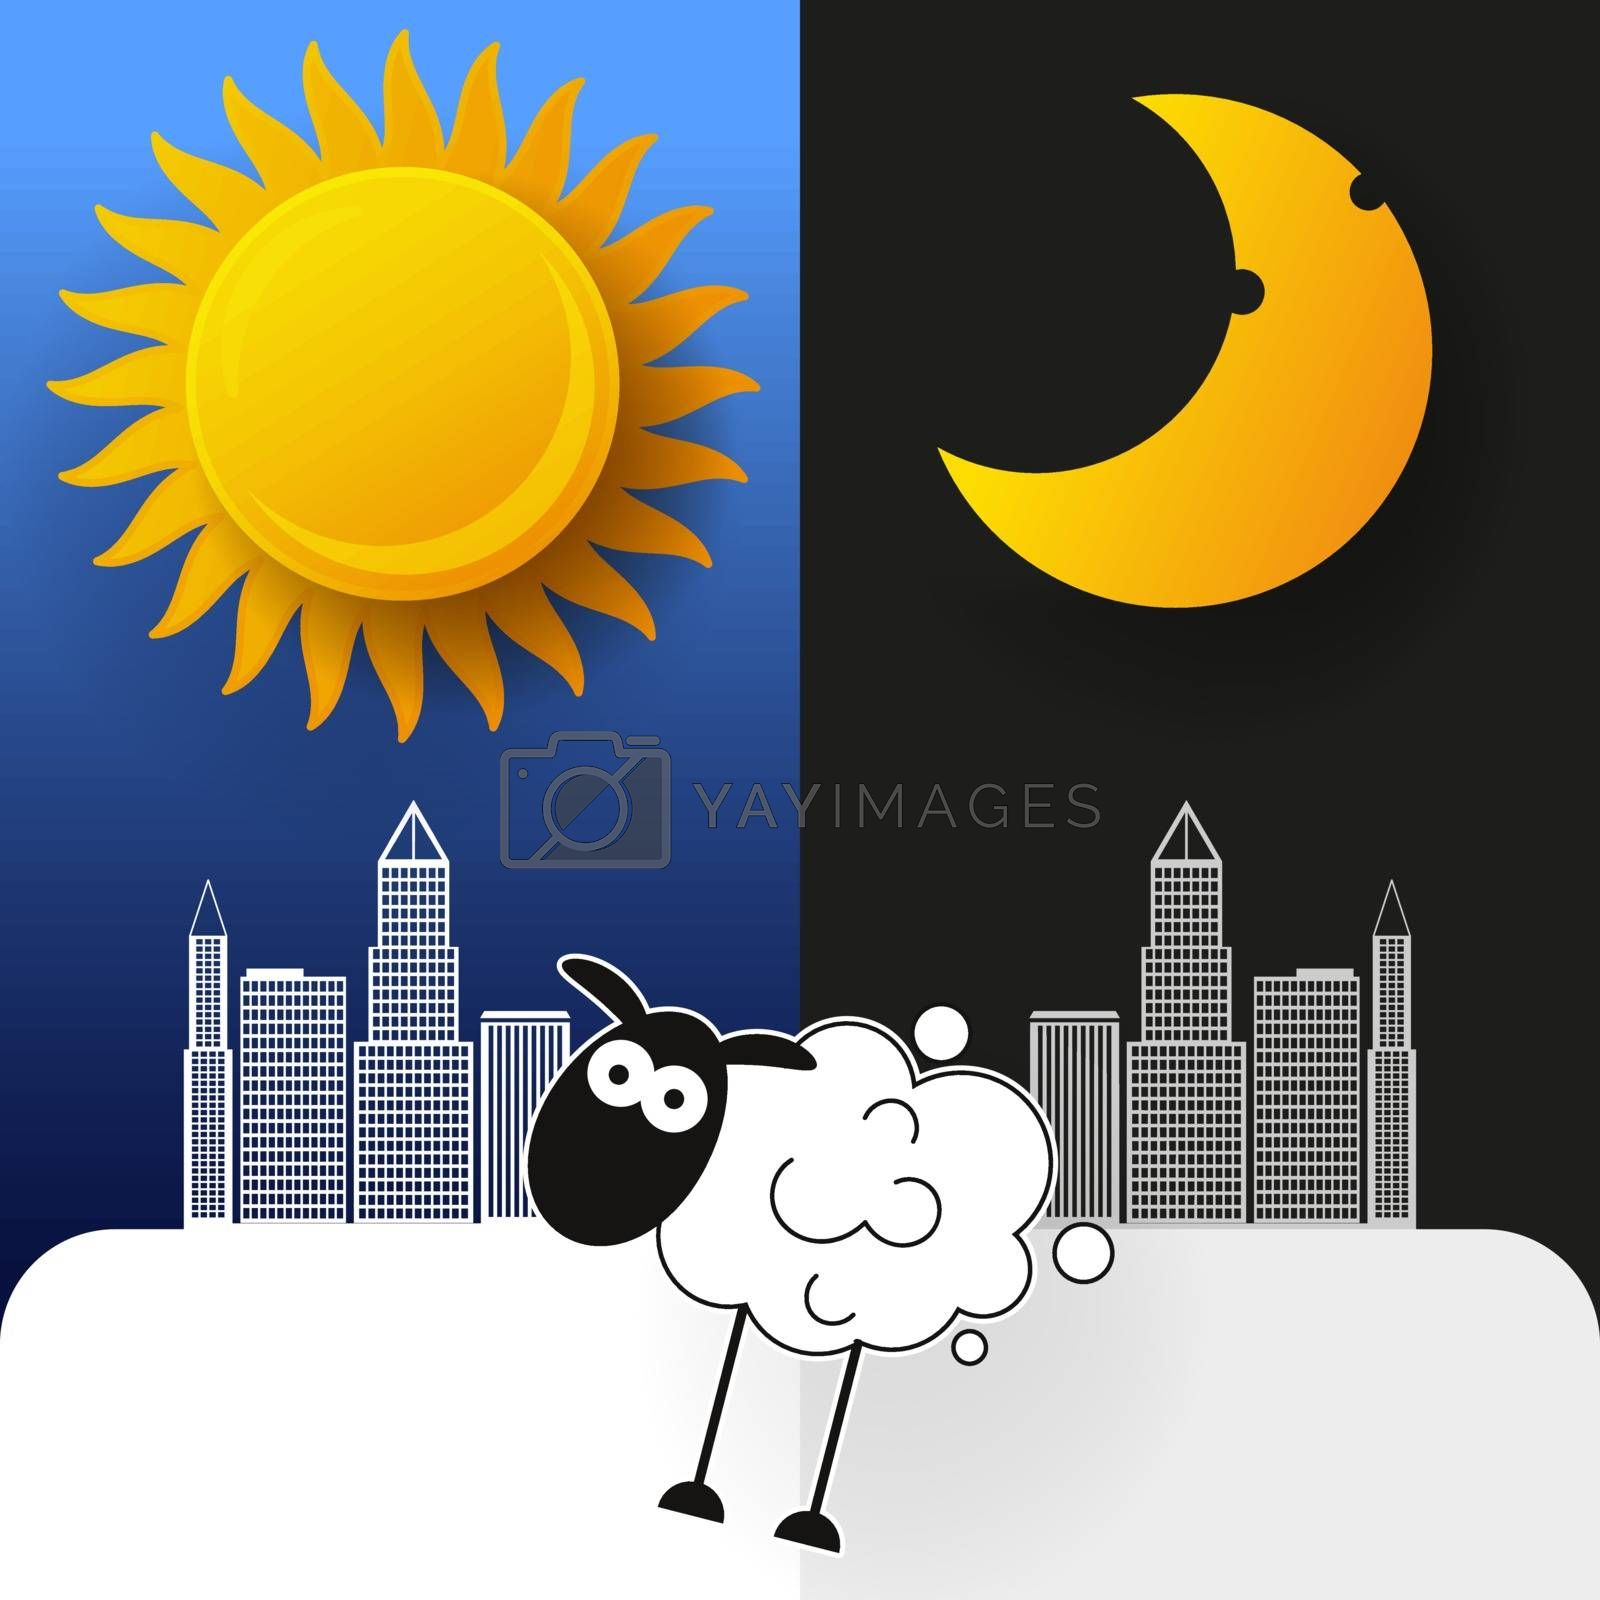 Sun, Moon And Stars. Day And Night Vector Banners. by brylov